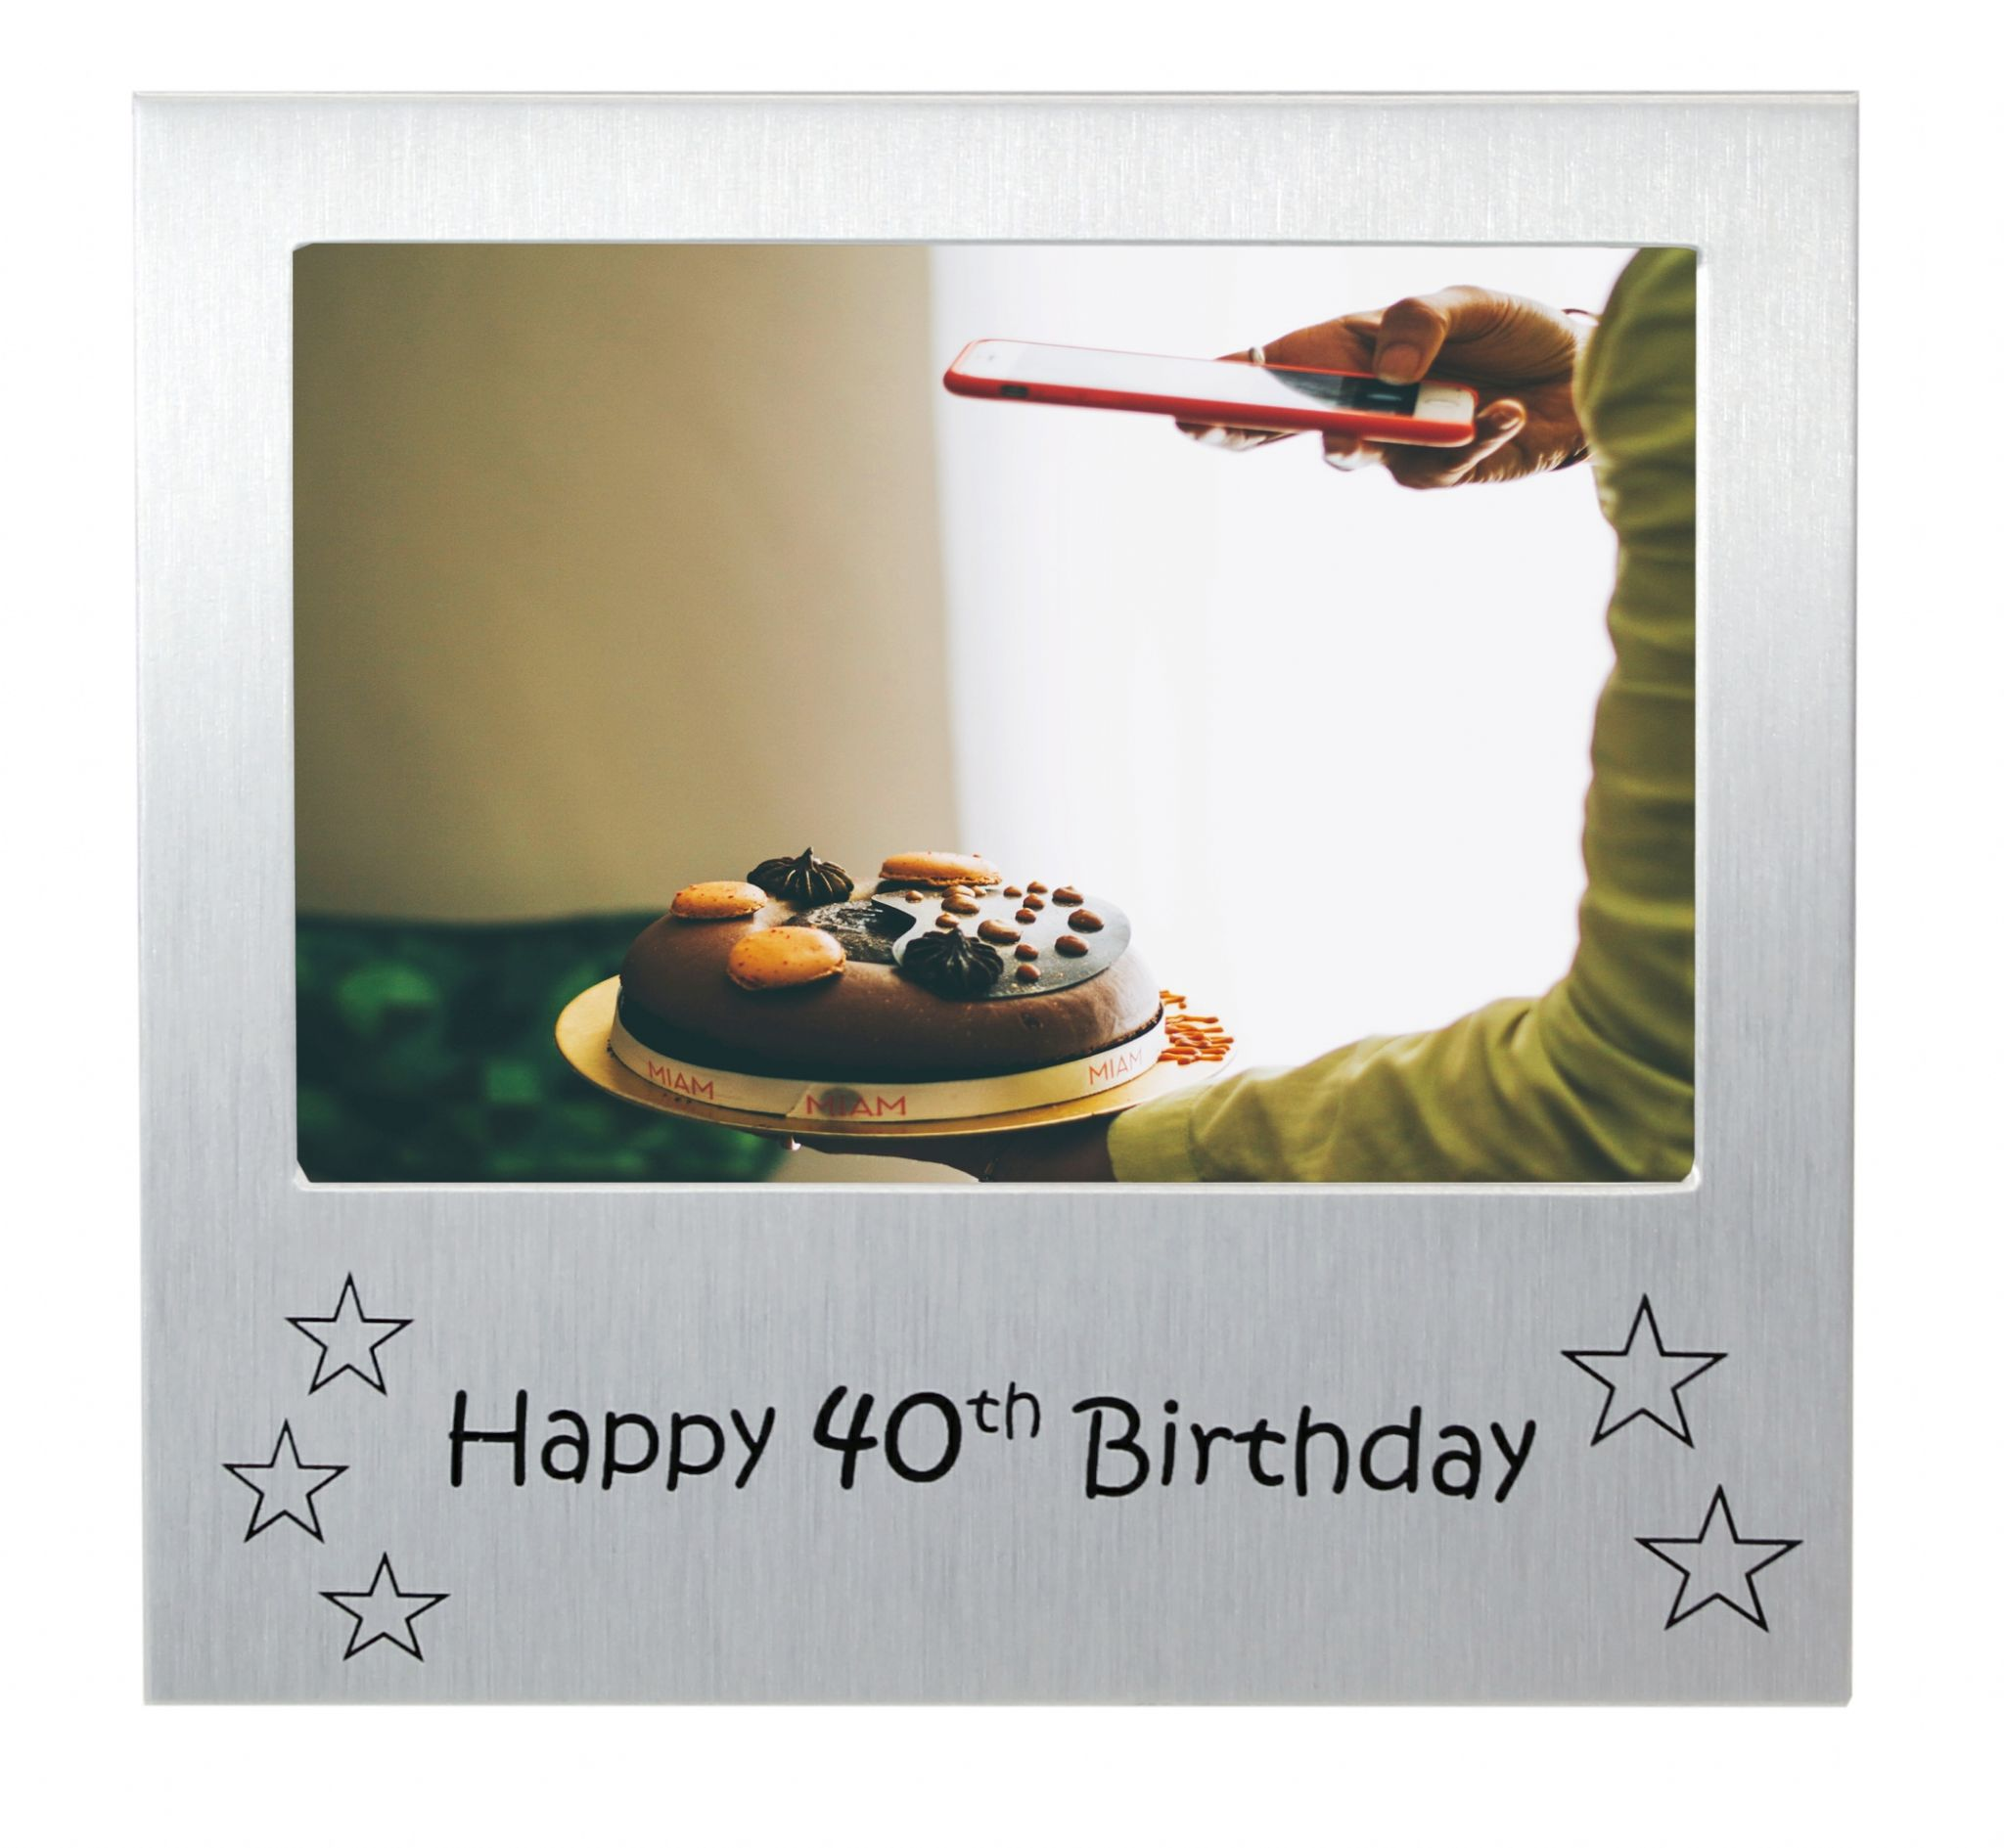 Happy 40th Birthday - Photo Frame Gift - Photo Size 5 x 3.5 Inches ...